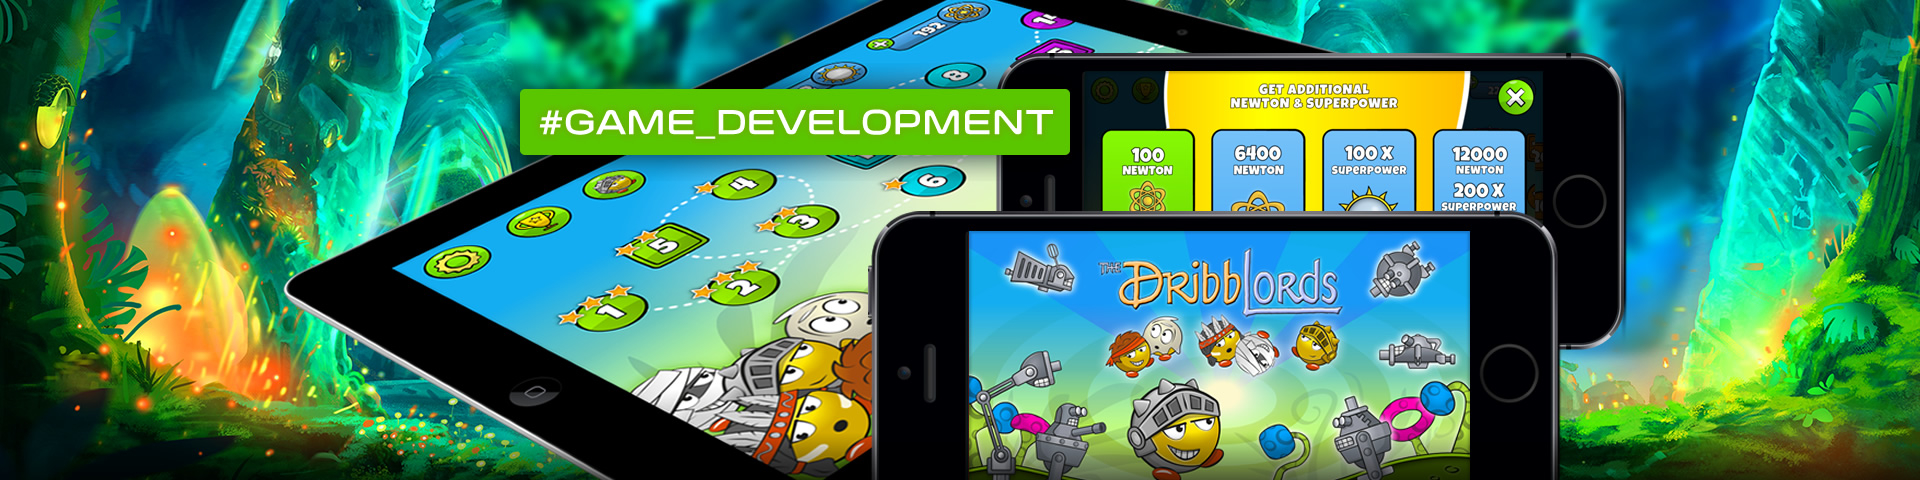 #Game_Development